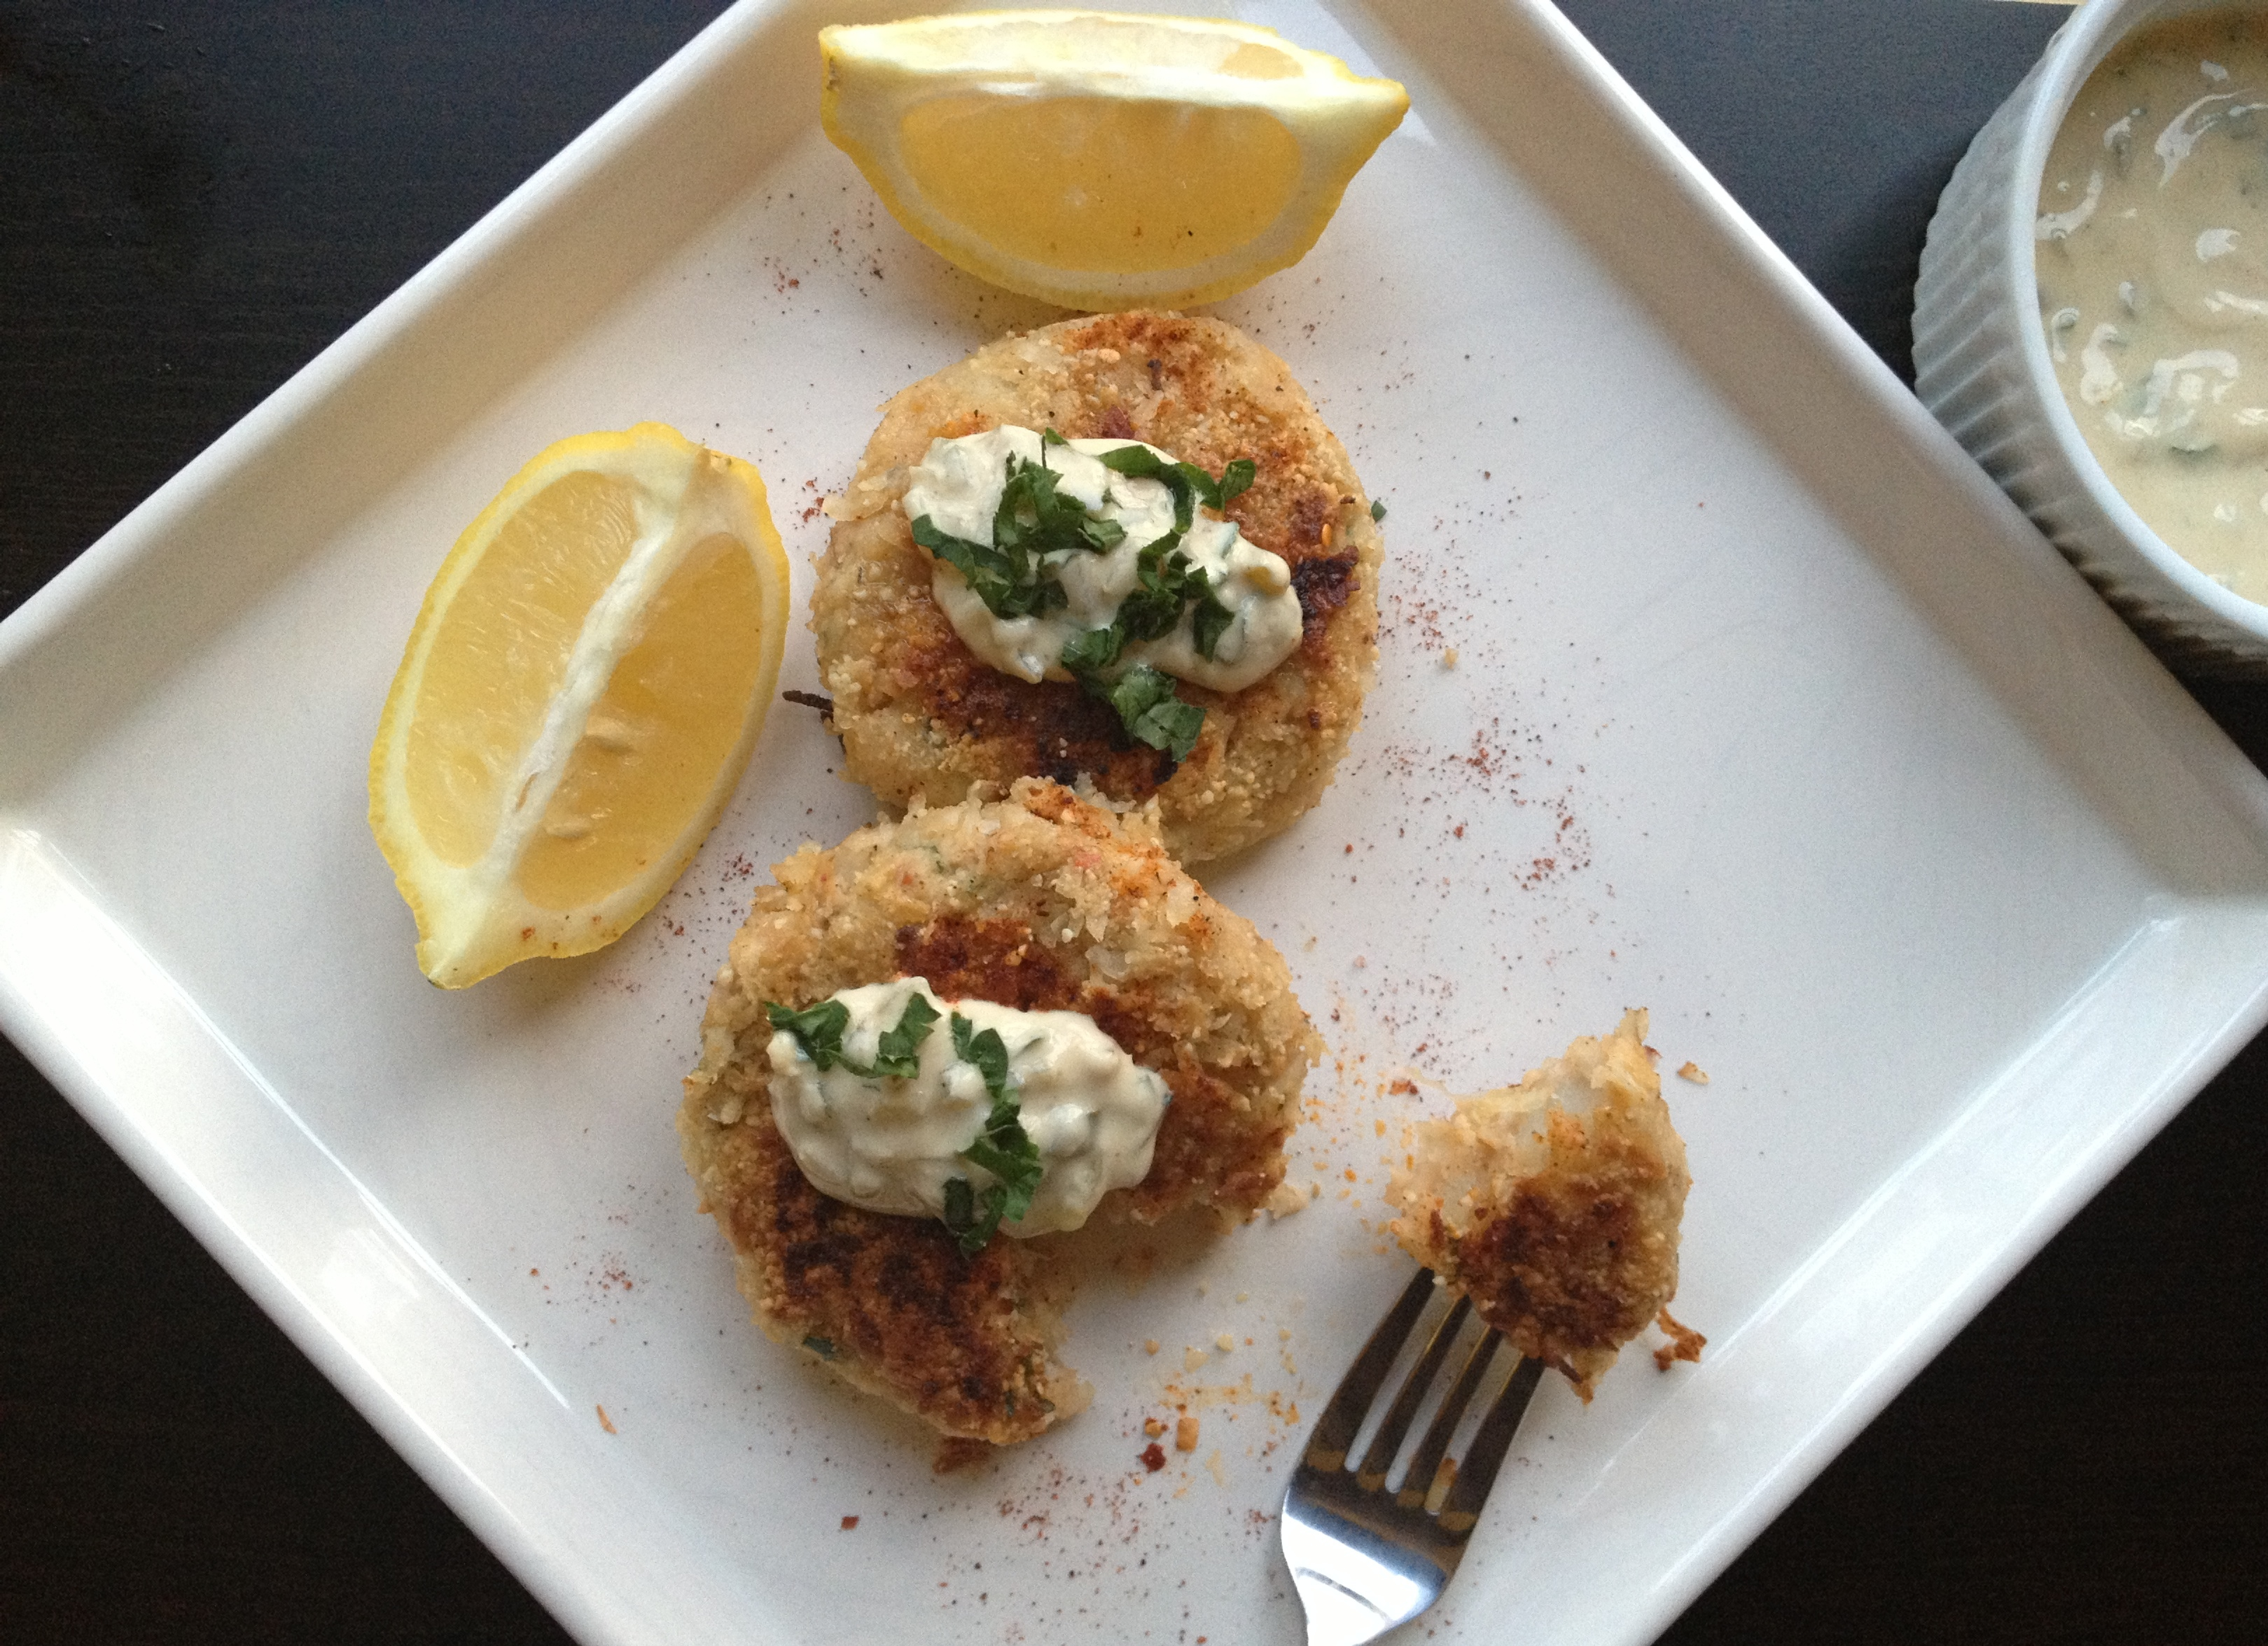 Herdy haddock fish cakes